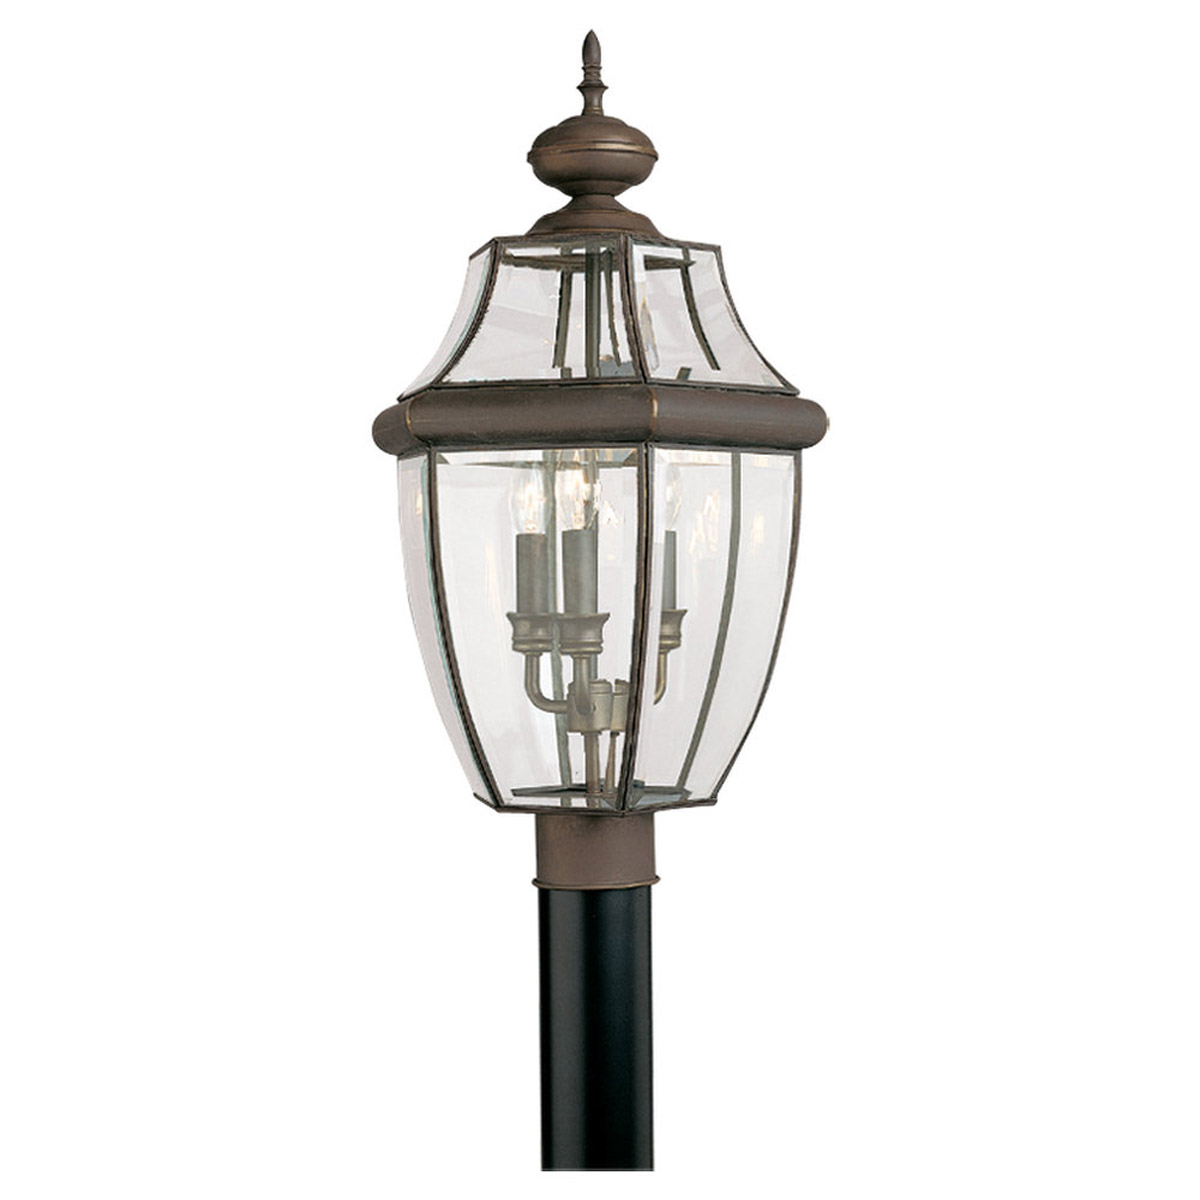 Sea Gull Lighting Lancaster 3 Light Outdoor Post Lantern in Antique Bronze 8239-71